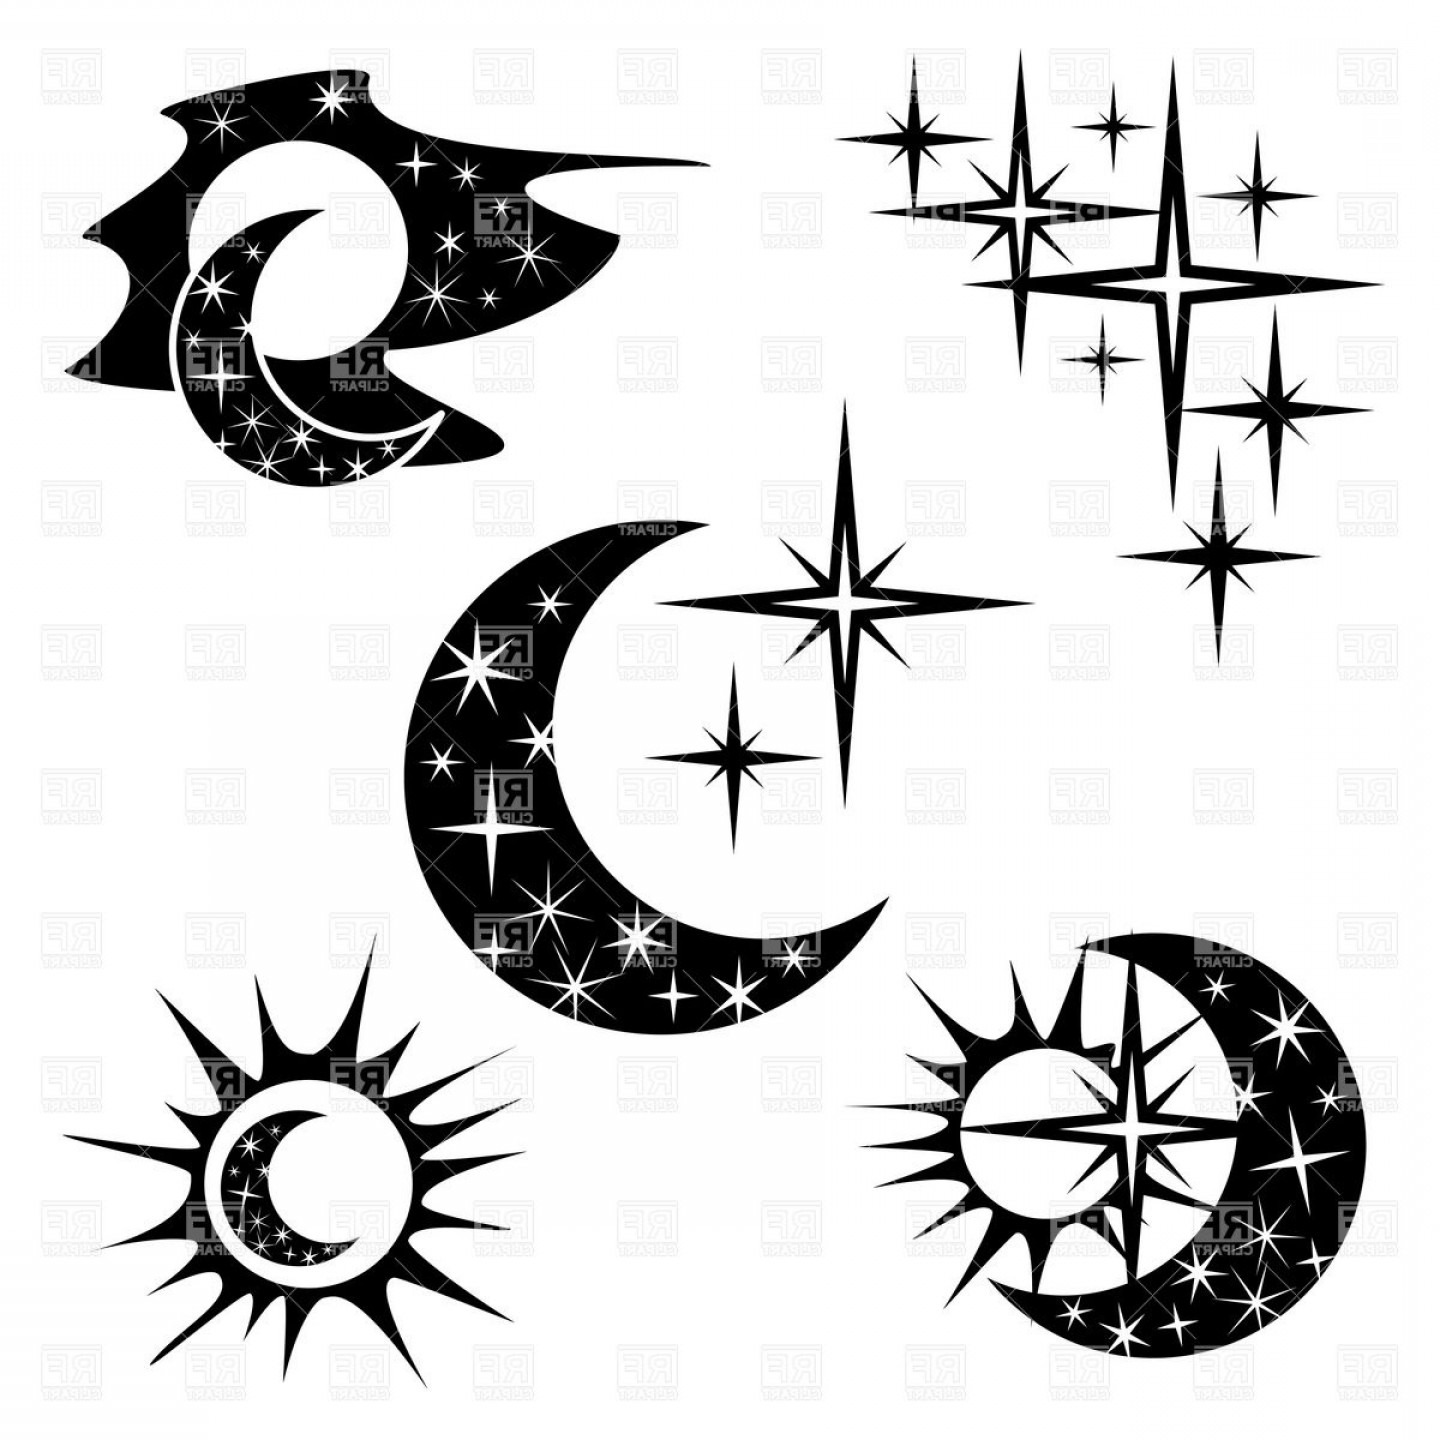 Star And Crescent Moon Vector: Night And Half Moon Crescent With Star Pattern Vector Clipart